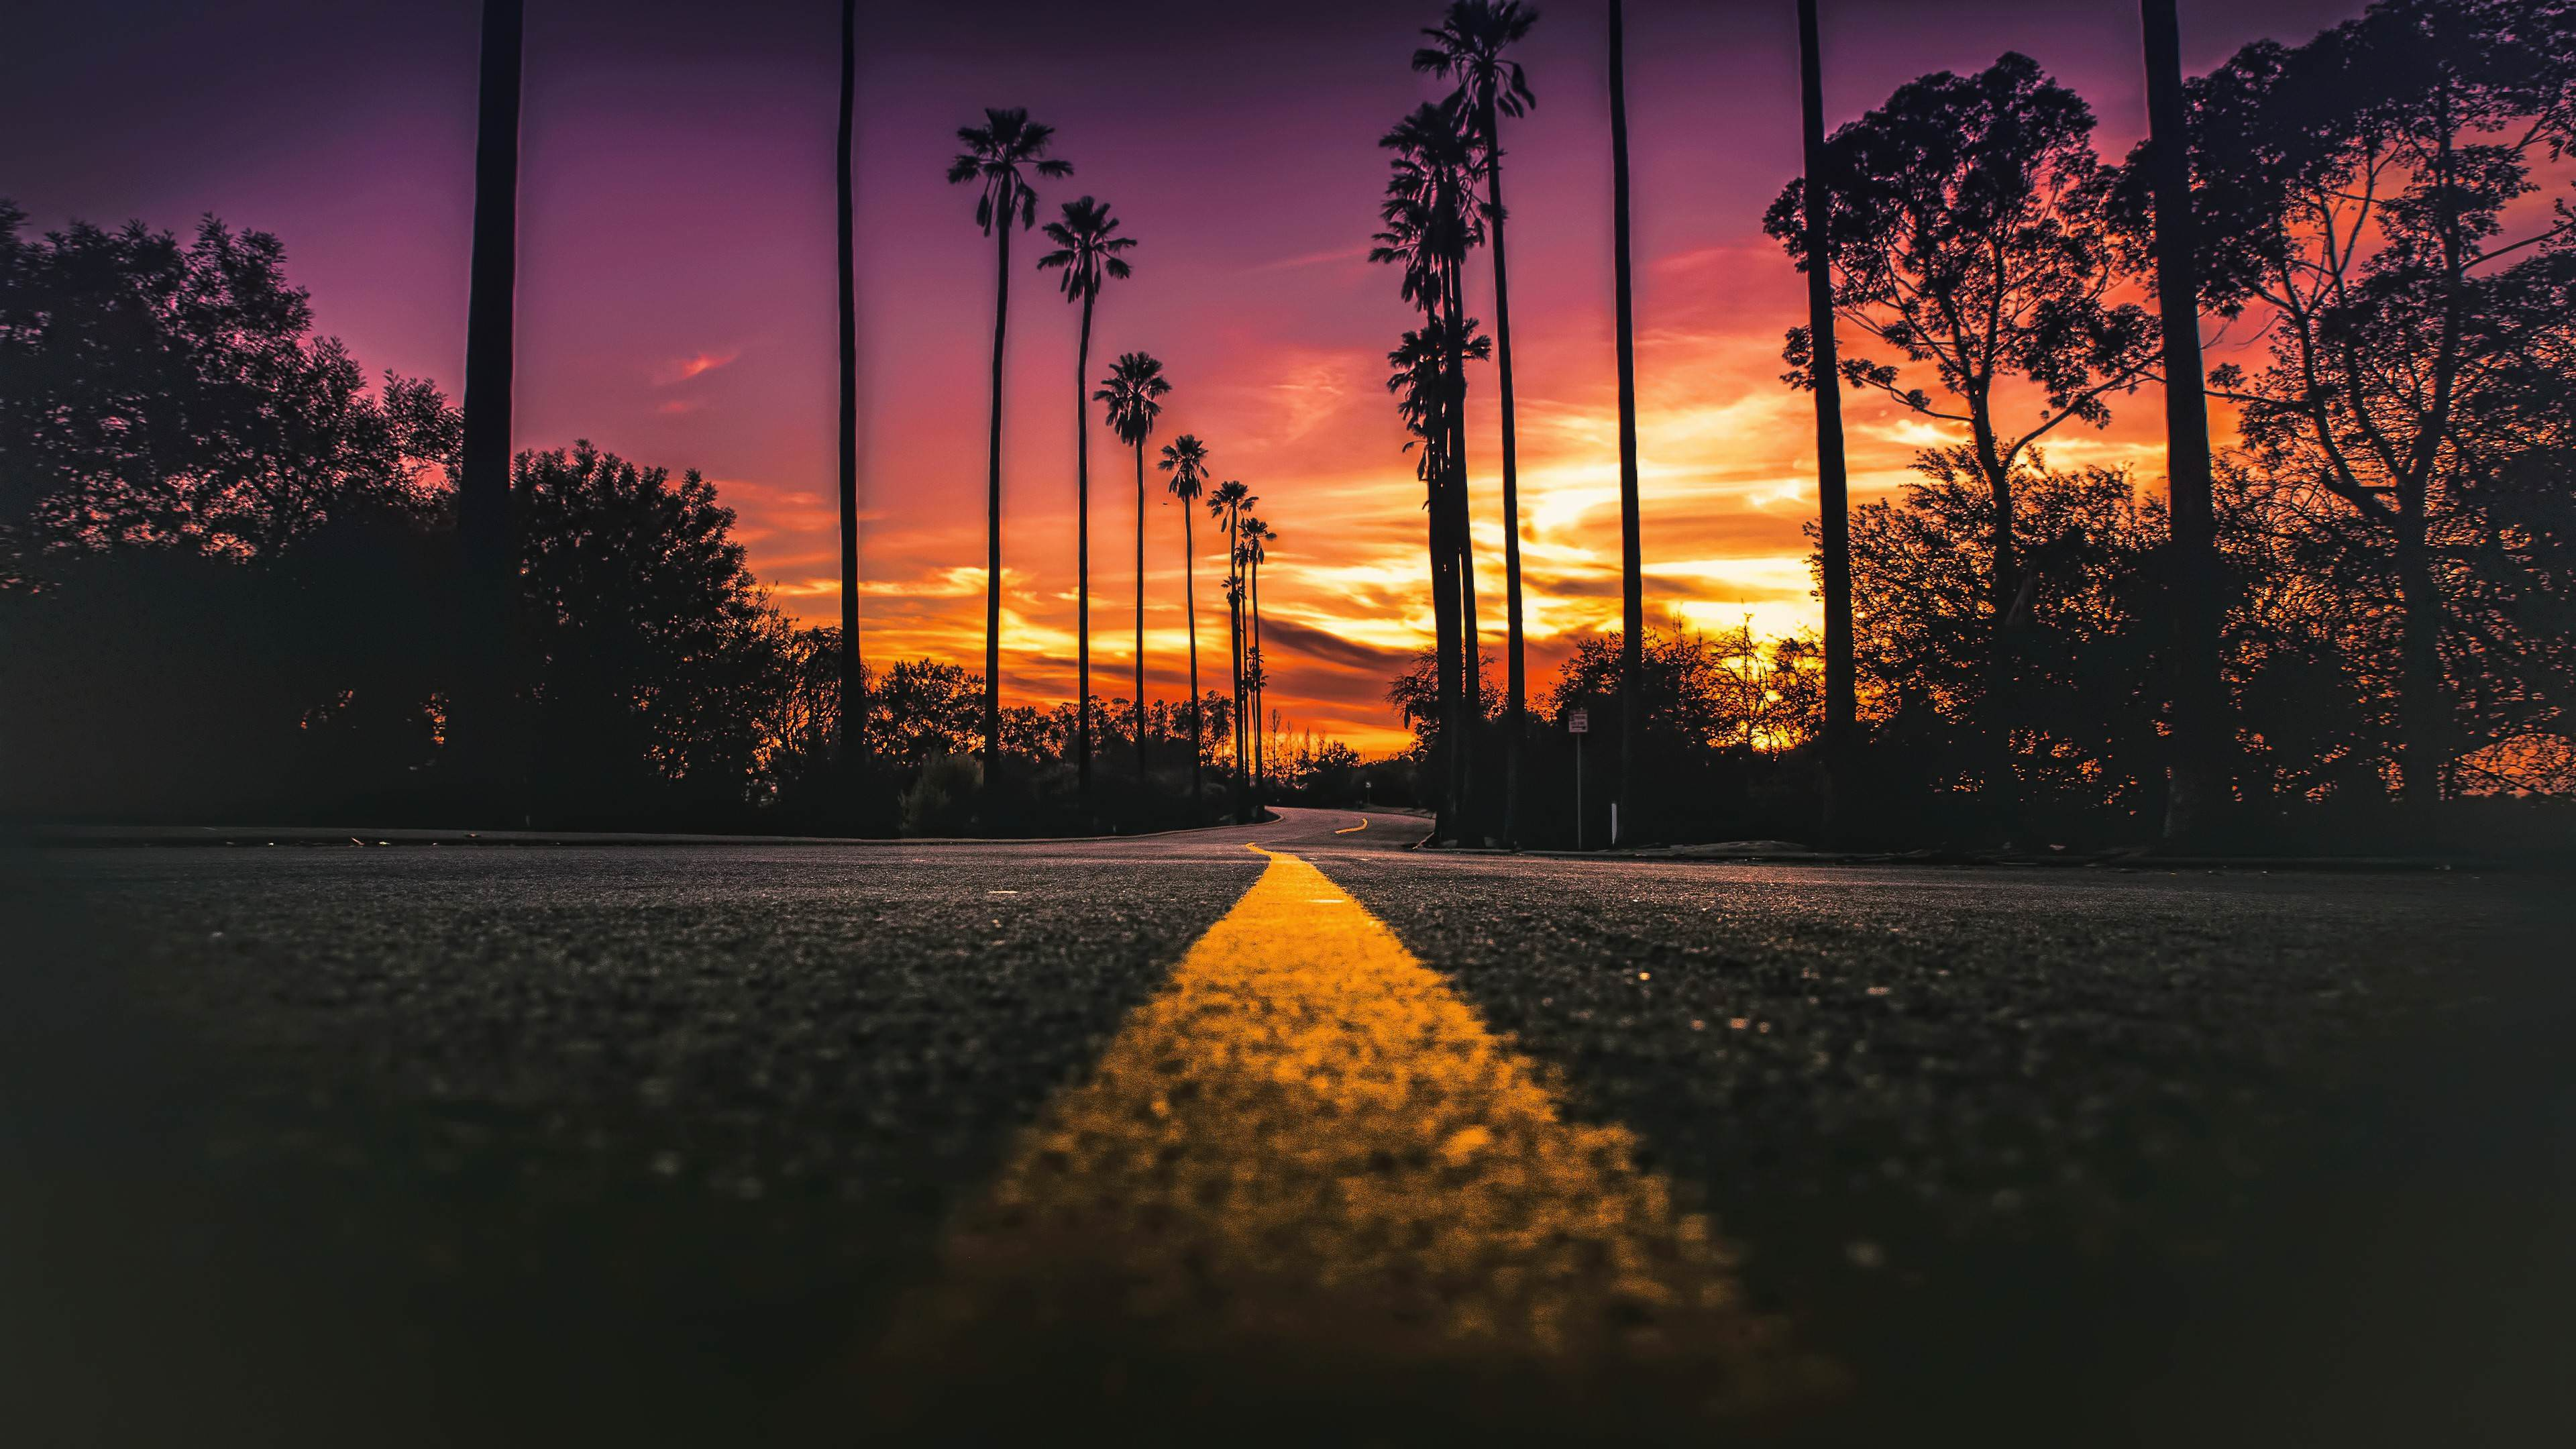 Street Of Los Angeles 4k Wallpaper